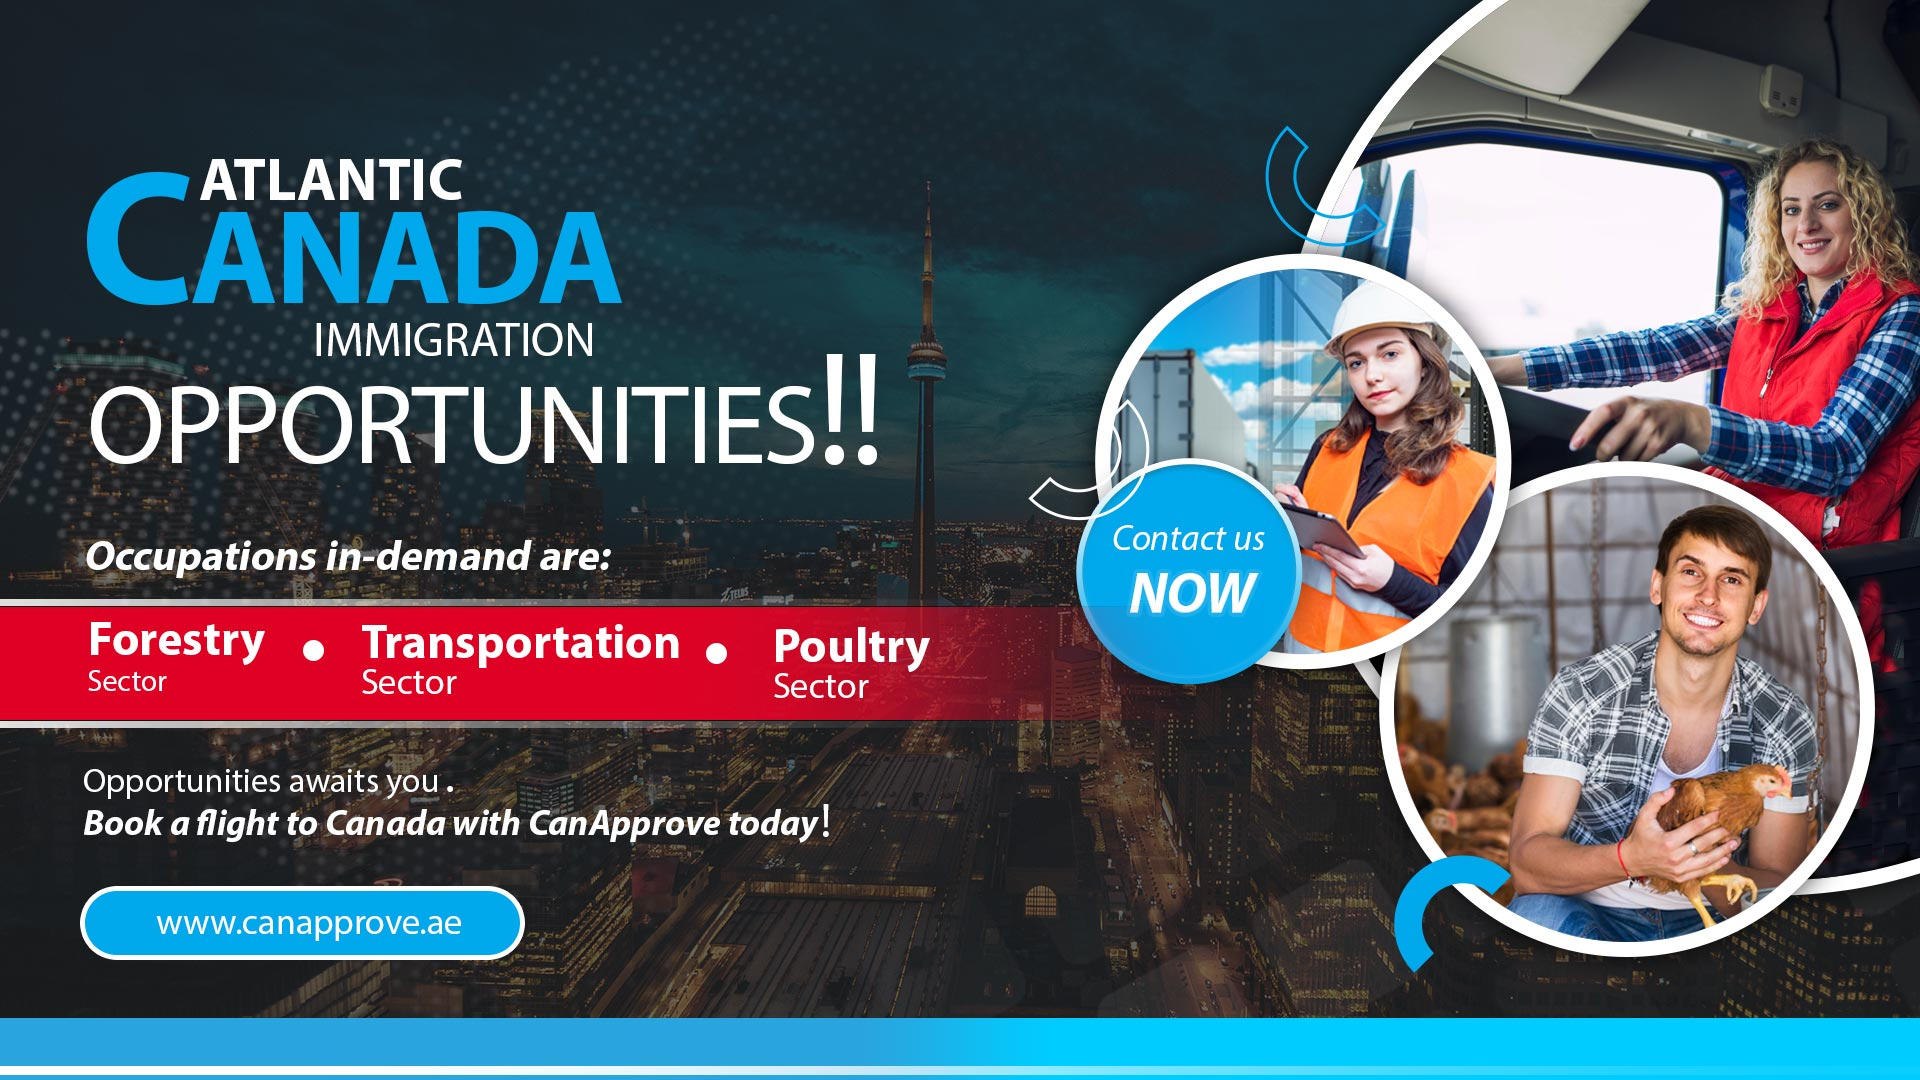 Atlantic Canada is filled with new opportunities